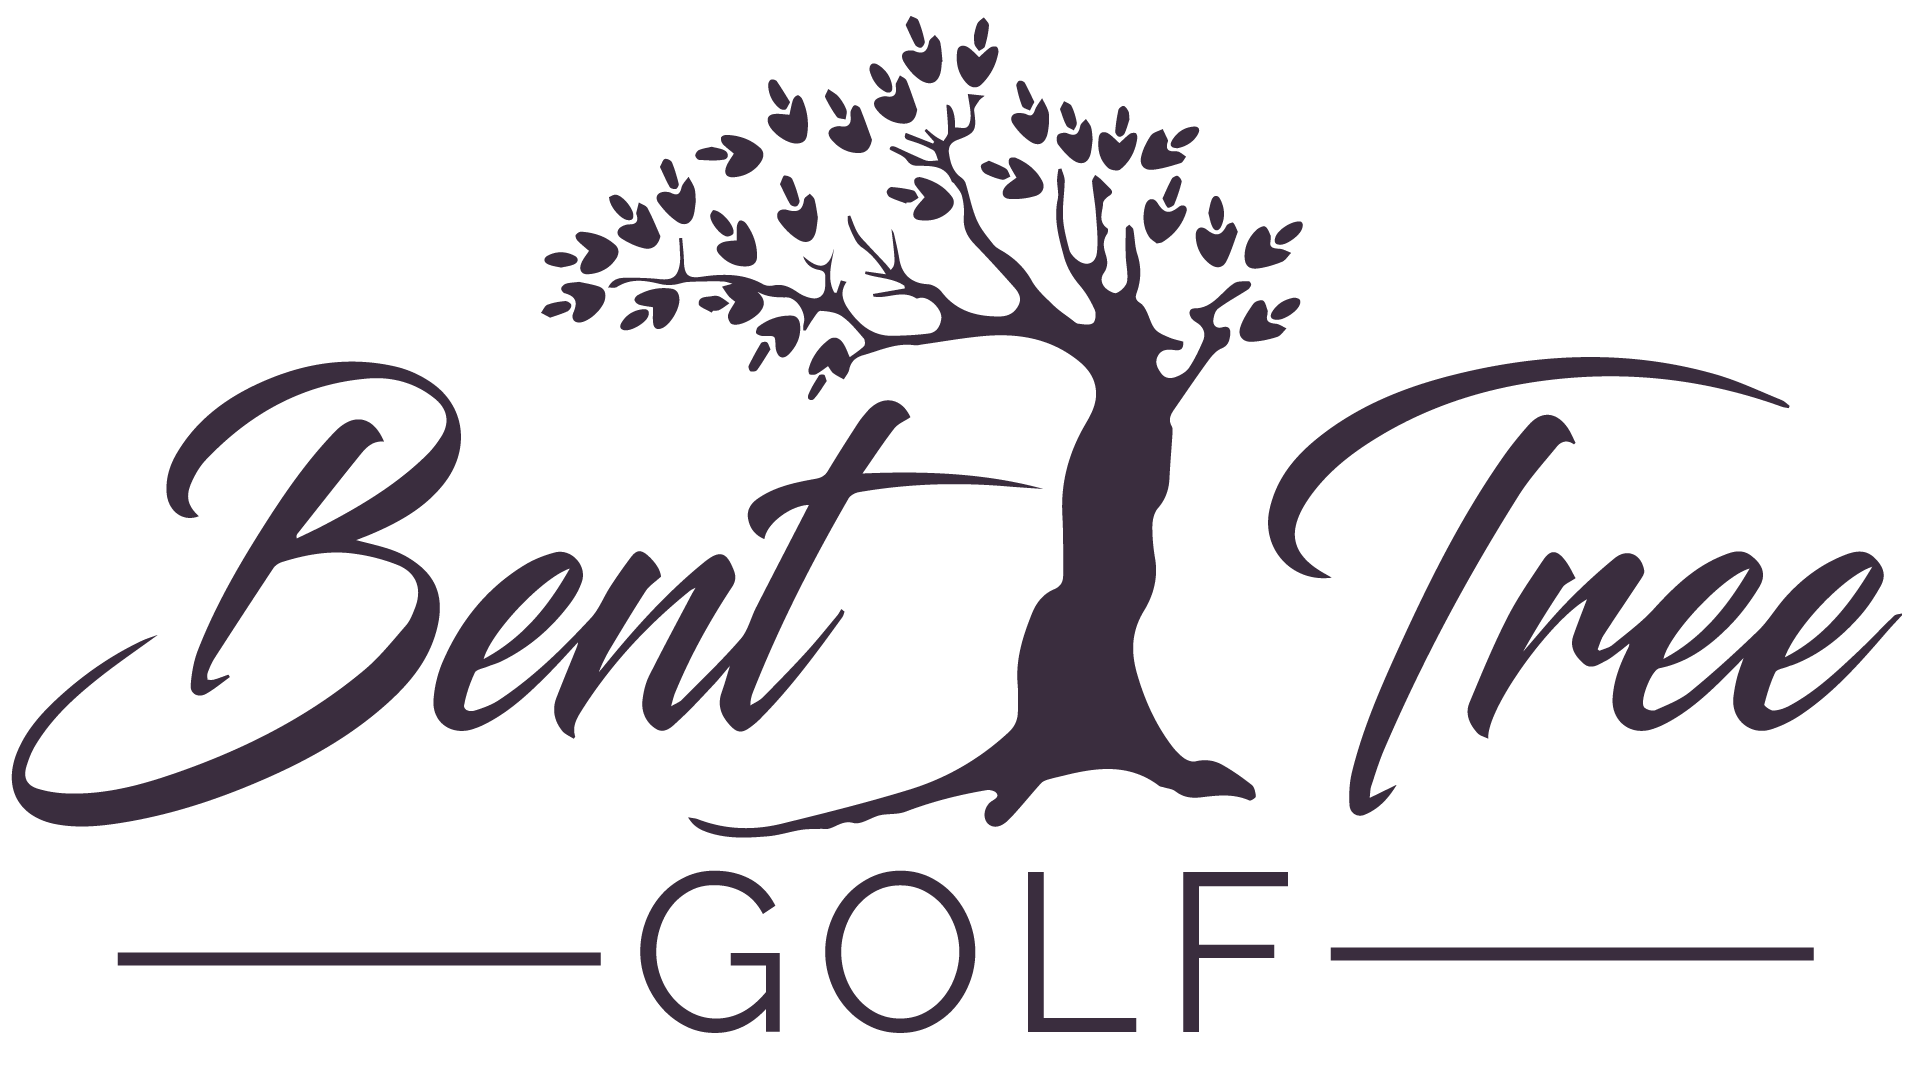 Bent Tree Community